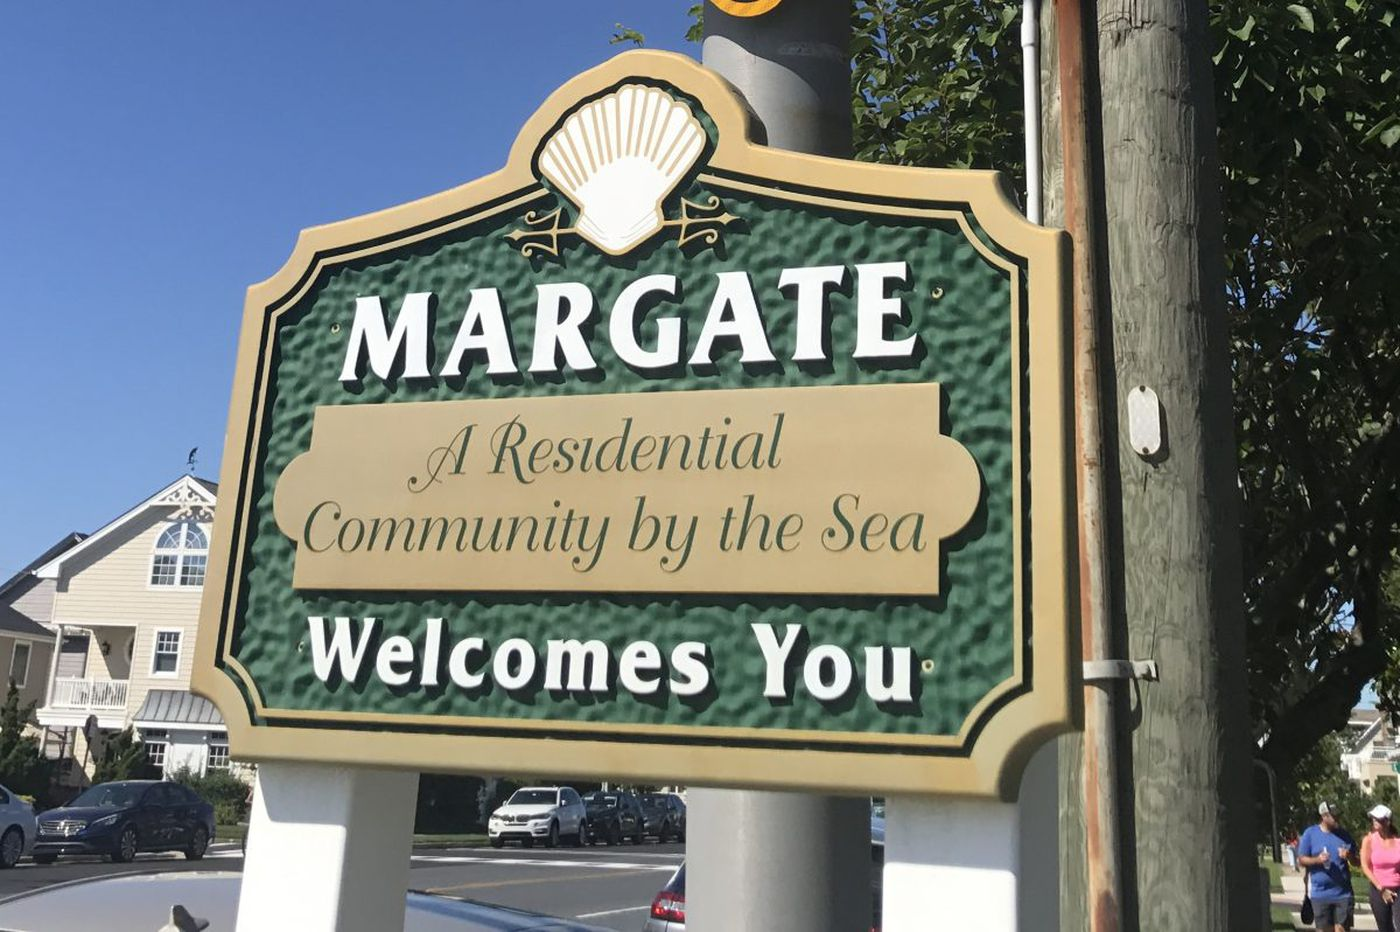 Margate, Shore towns brace for impact of federal inquiry into firefighters, city workers